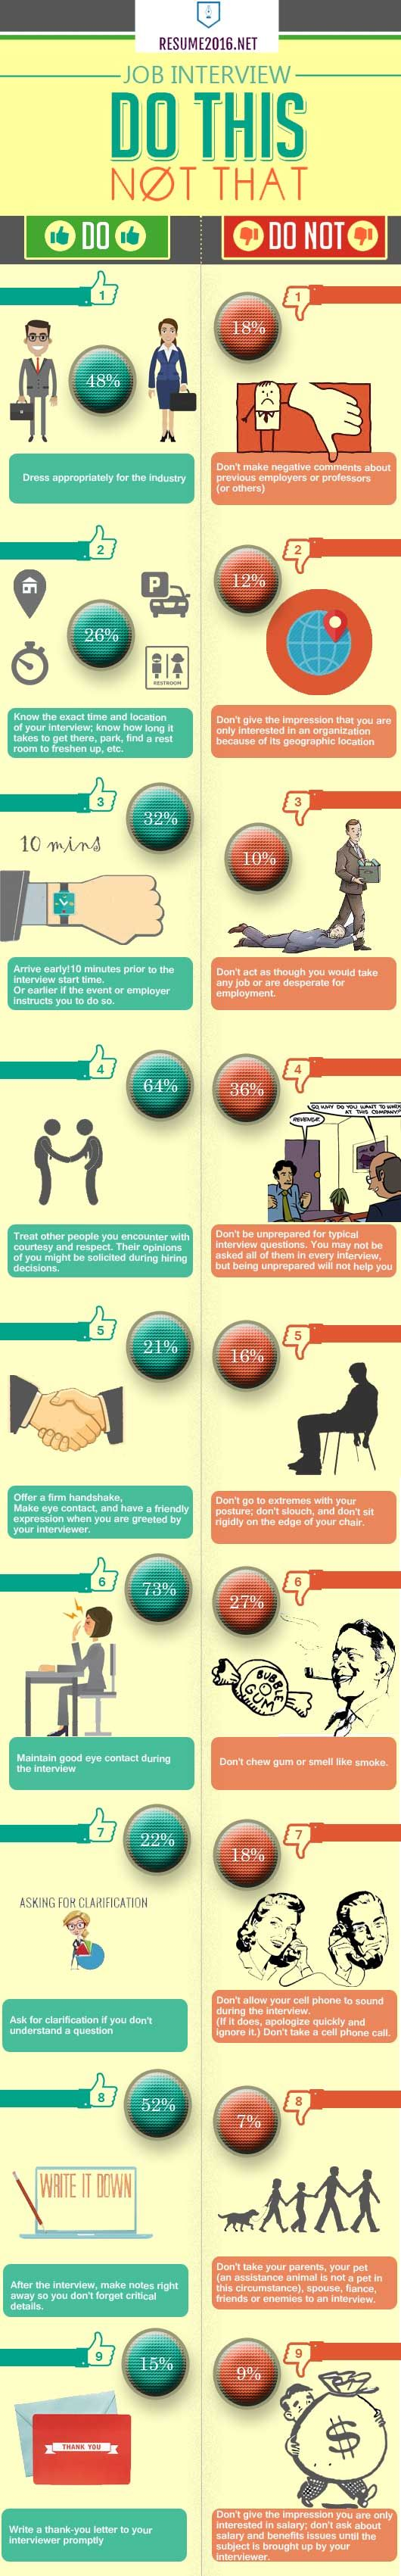 Job interview do's and dont's